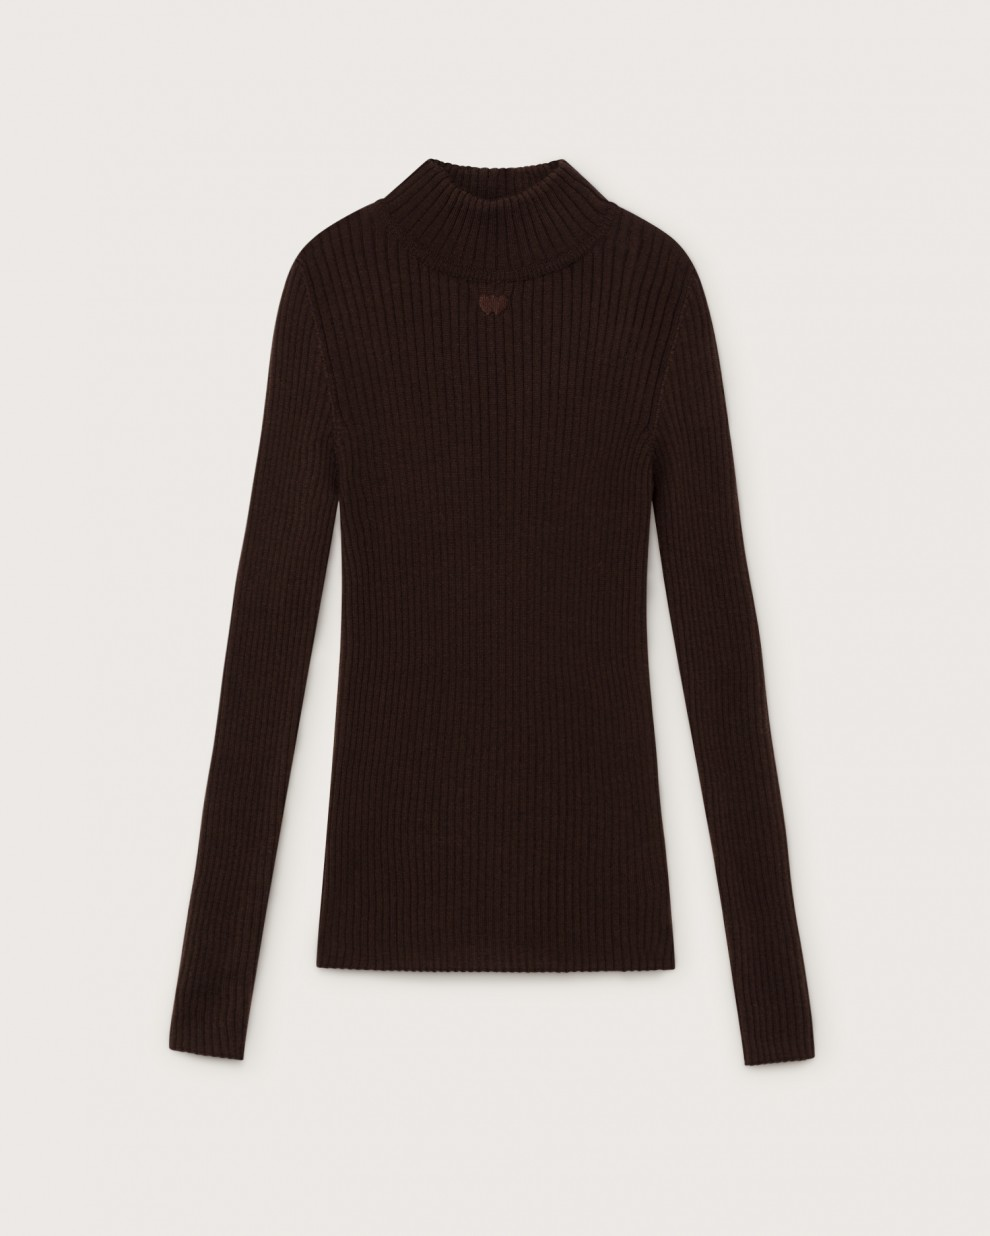 BROWN KAPO SWEATER